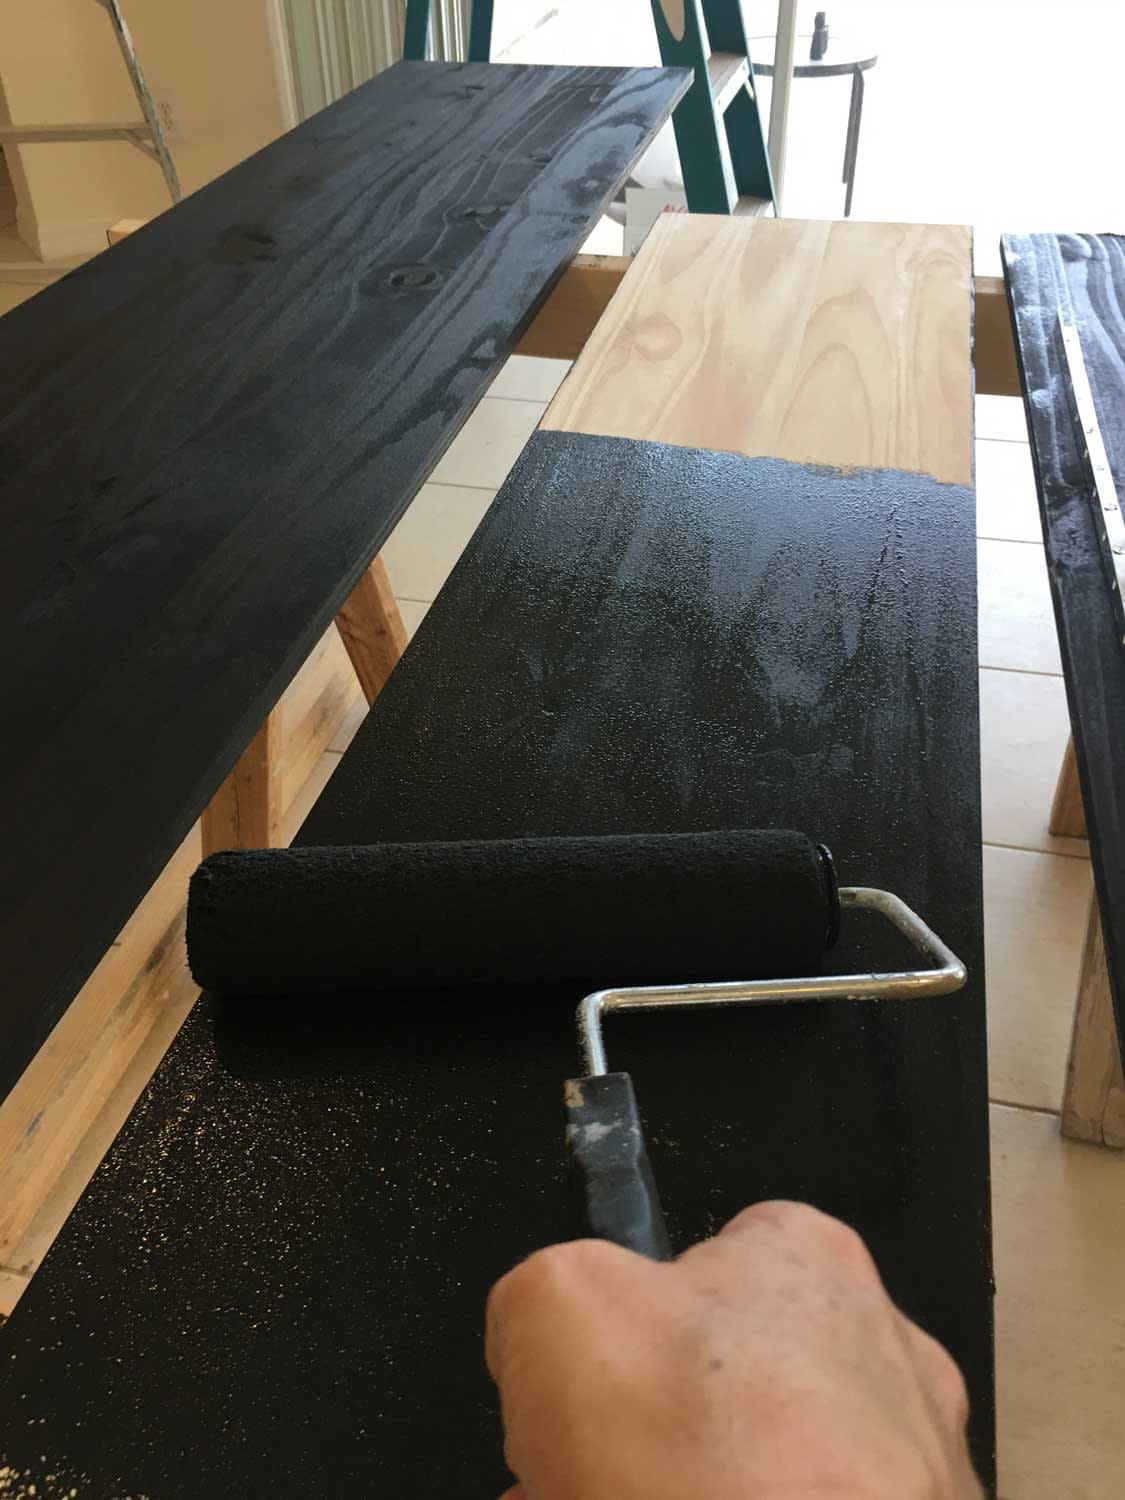 painting the shelving black